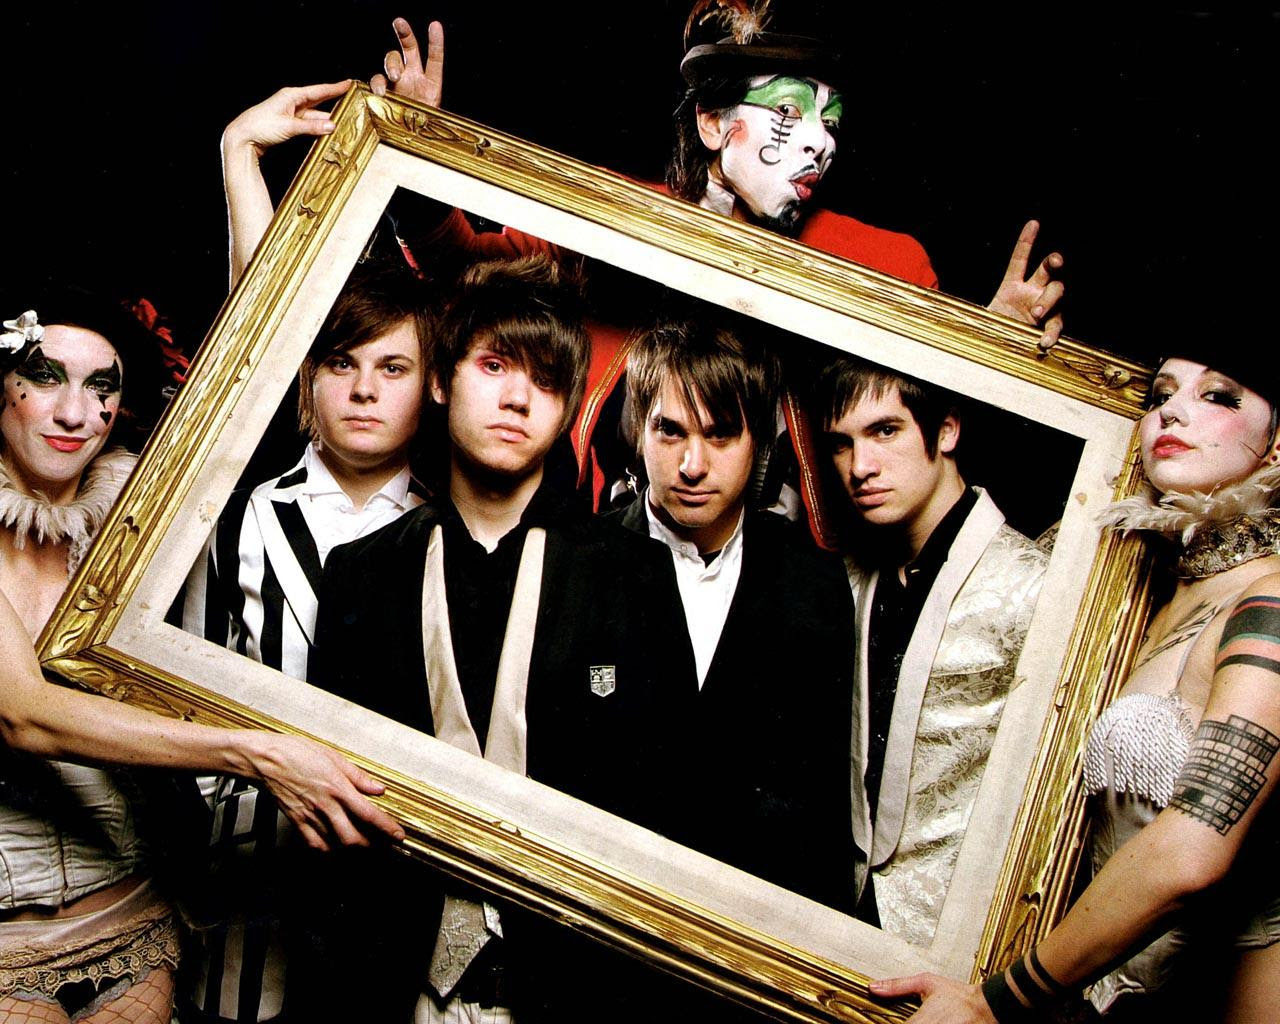 Best Band Panic At The Disco 1280x1024 Wallpaper 2